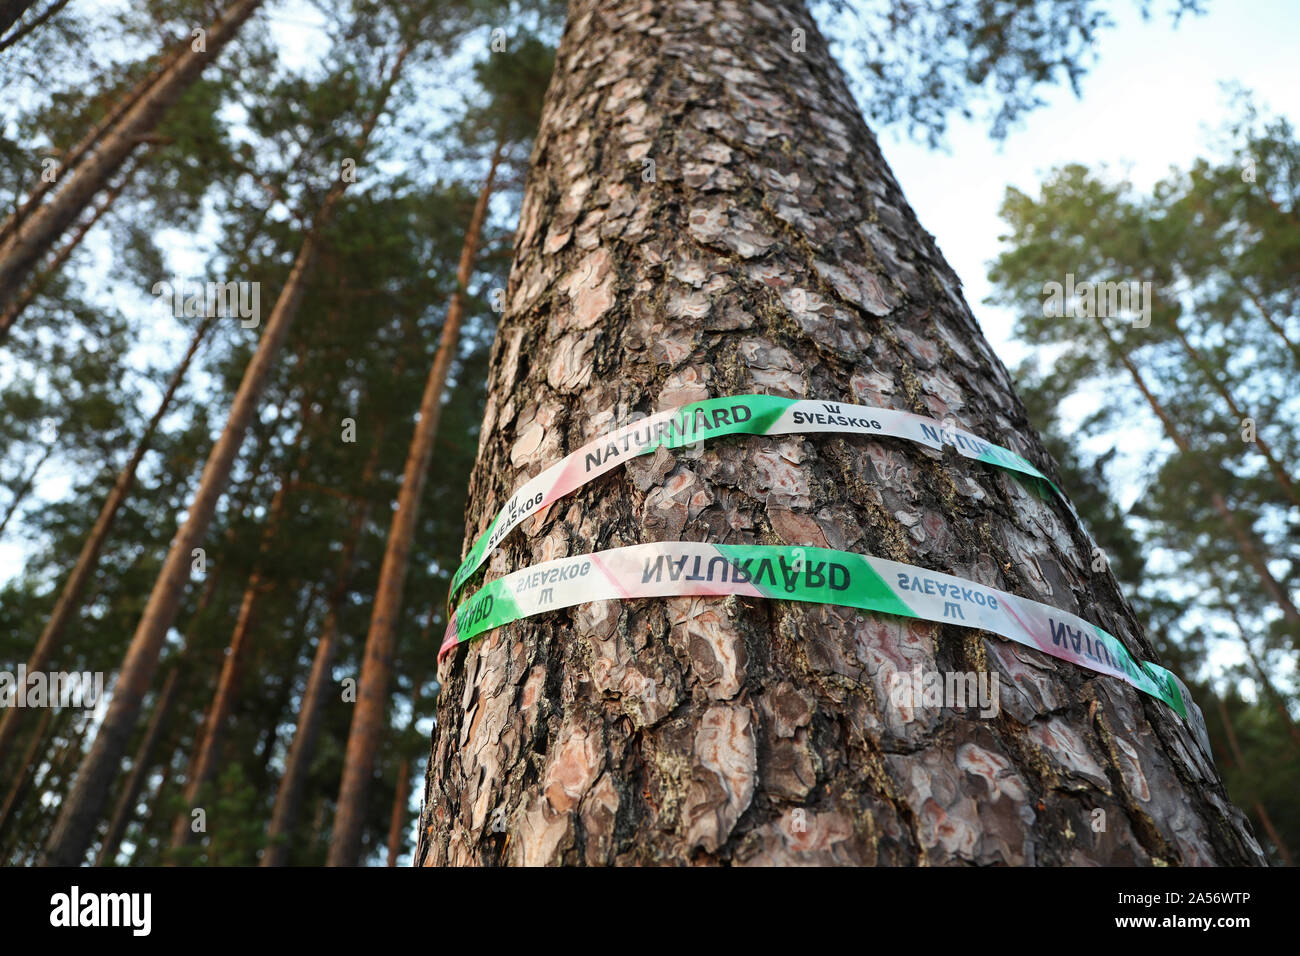 Tape on trees (pine) in a forest, where it says Sveaskog and nature conservation.Photo Jeppe Gustafsson Stock Photo